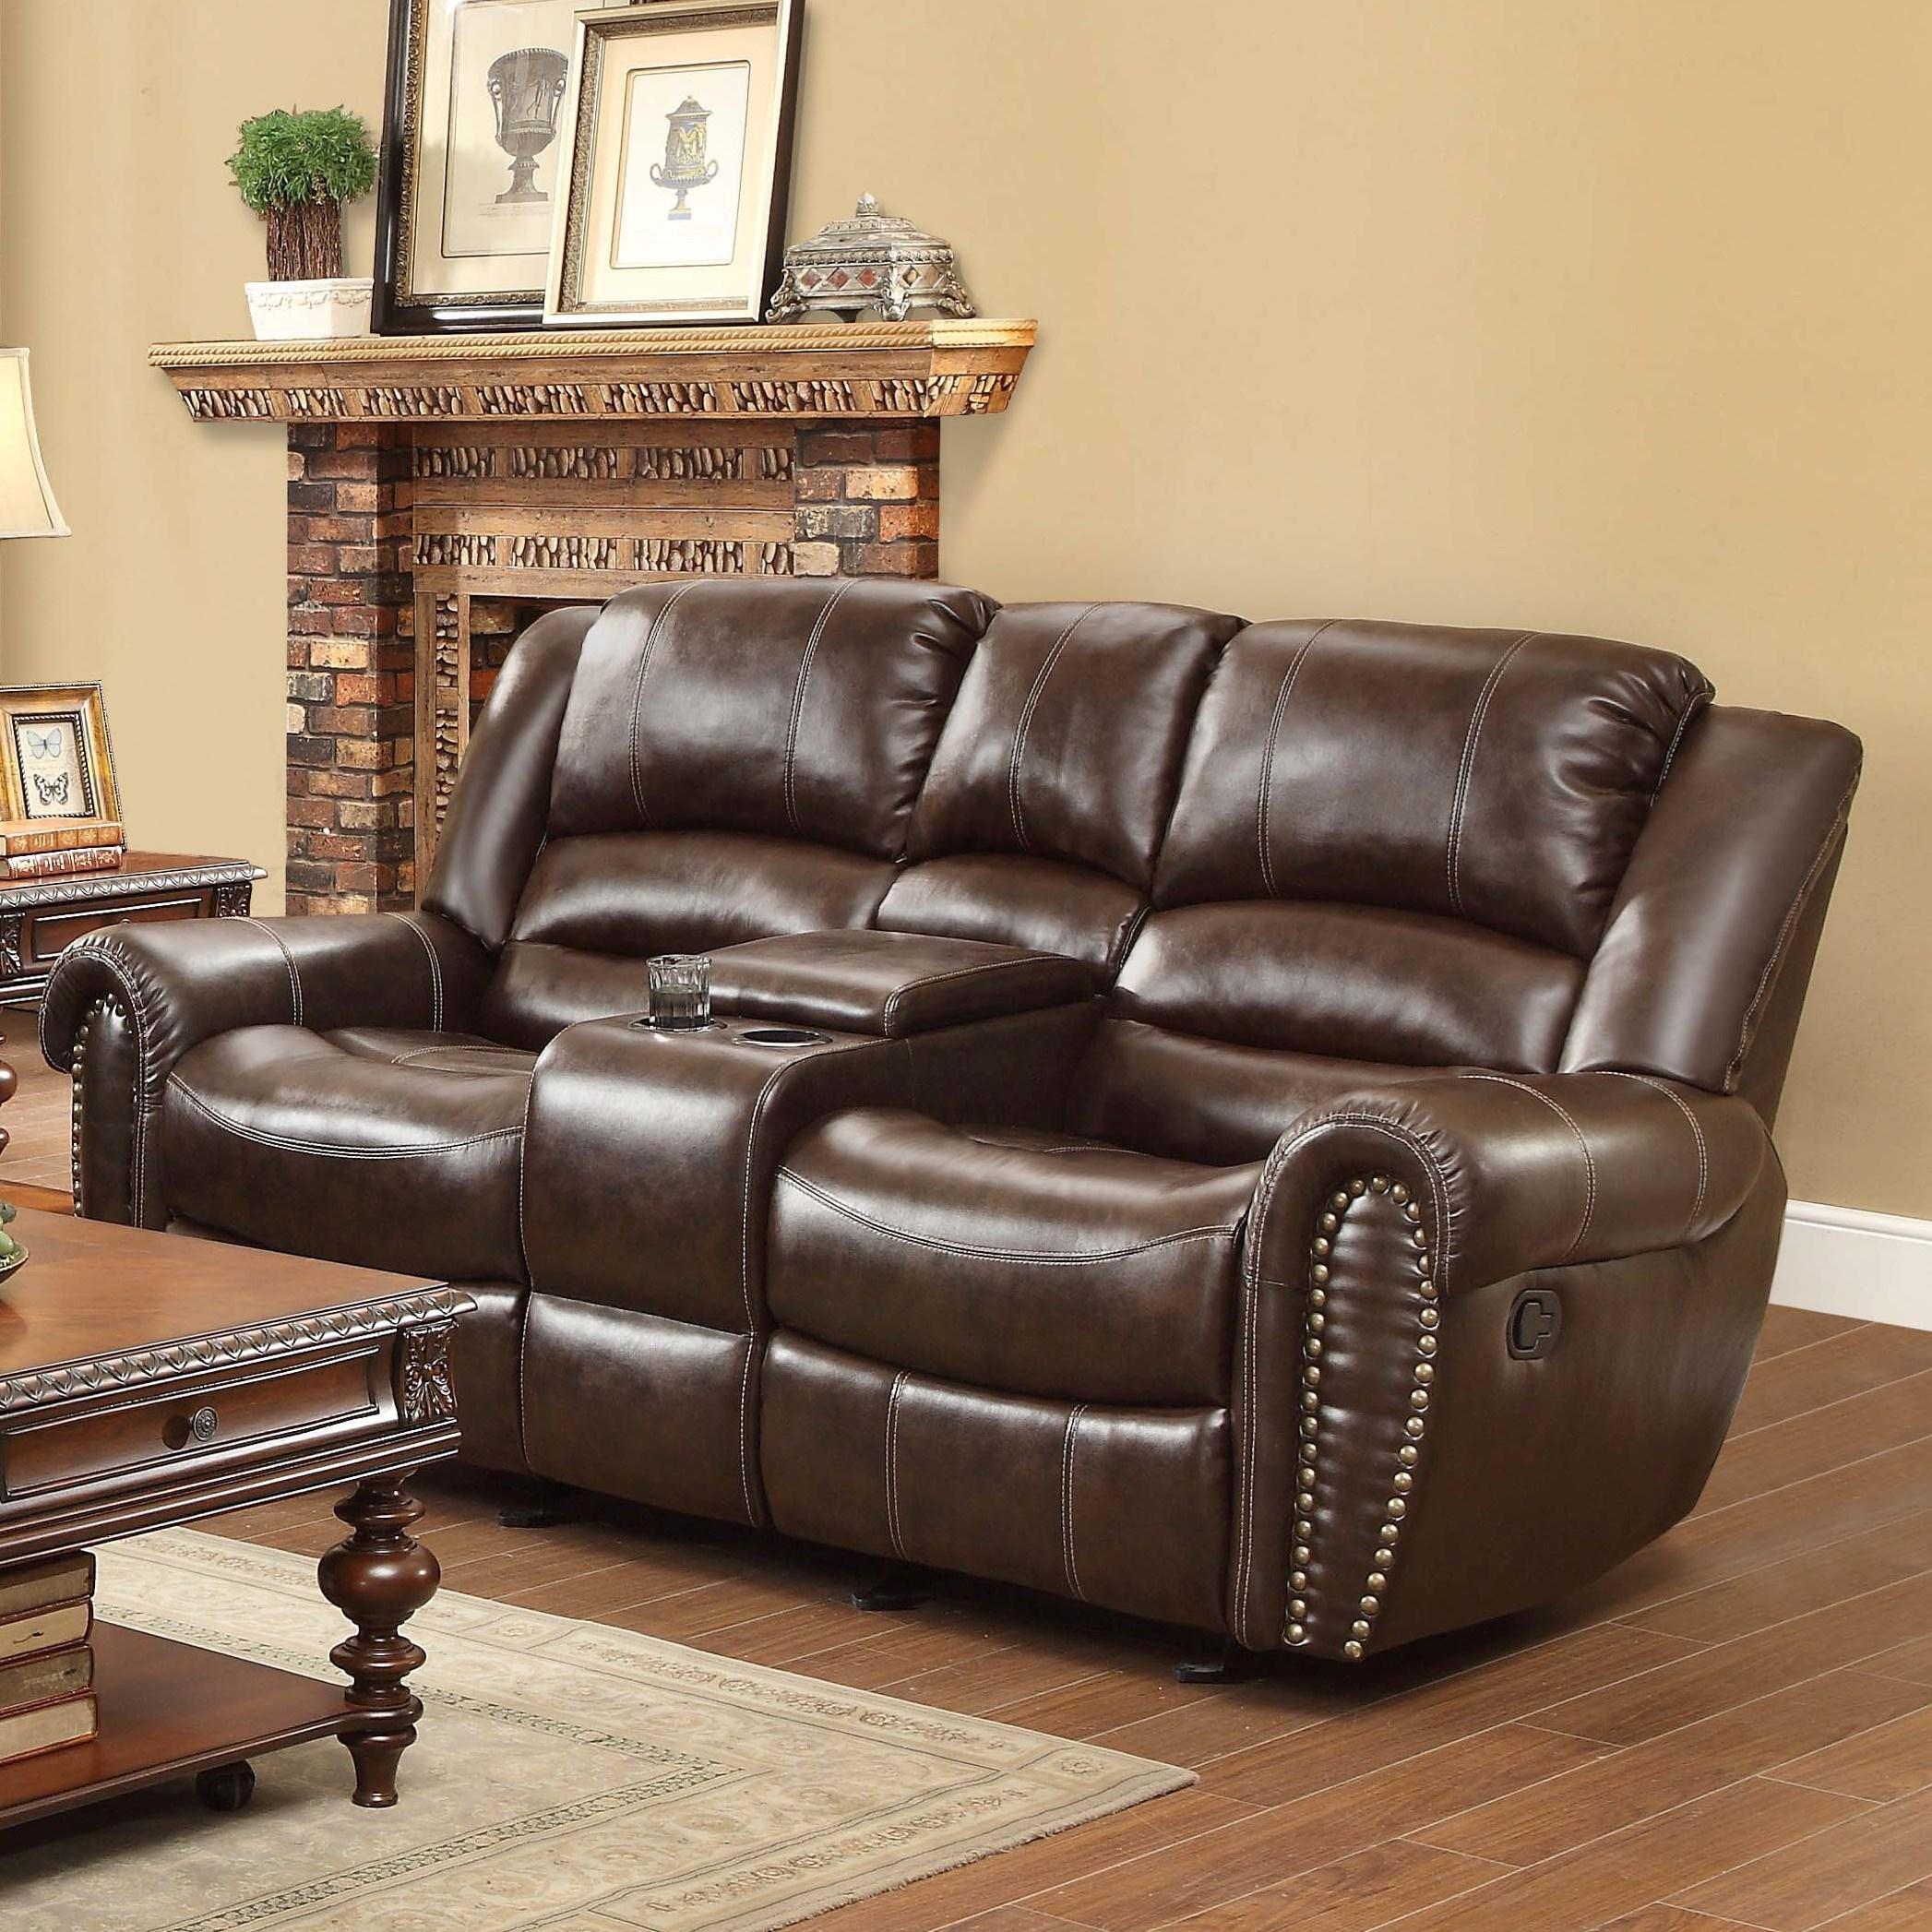 Homelegance Center Hill 9668brw 2 Traditional Reclining Loveseat With Console And Nailhead Trim